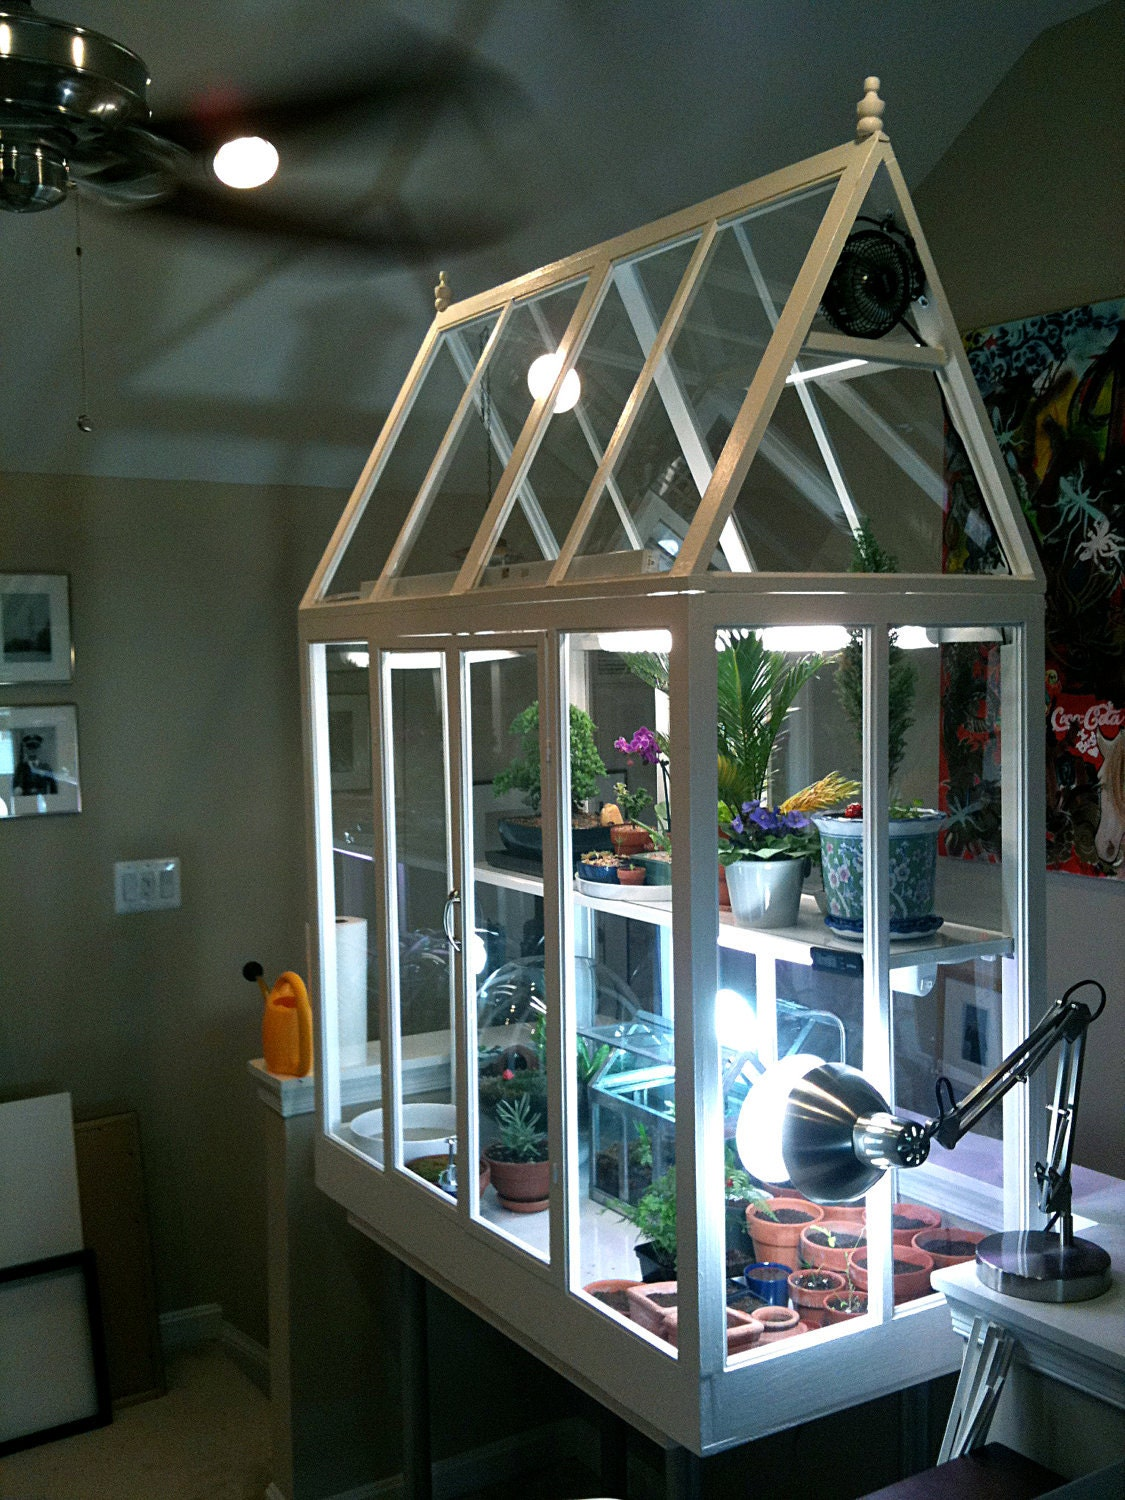 Incredible custom indoor greenhouse one of a kind by for Green home building kits